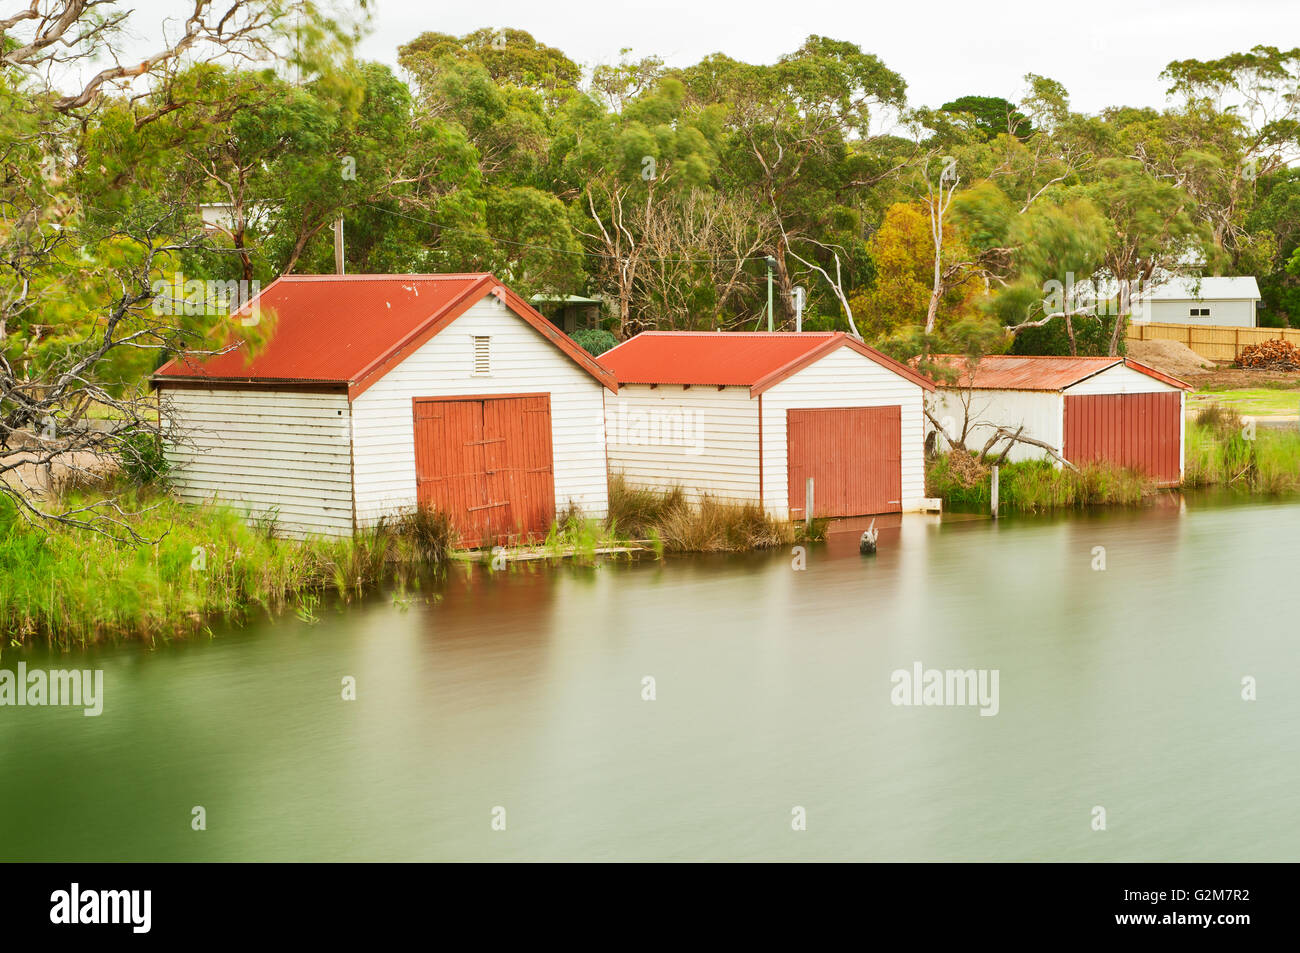 Boatsheds at Anglesea River on the Great Ocean Road. - Stock Image